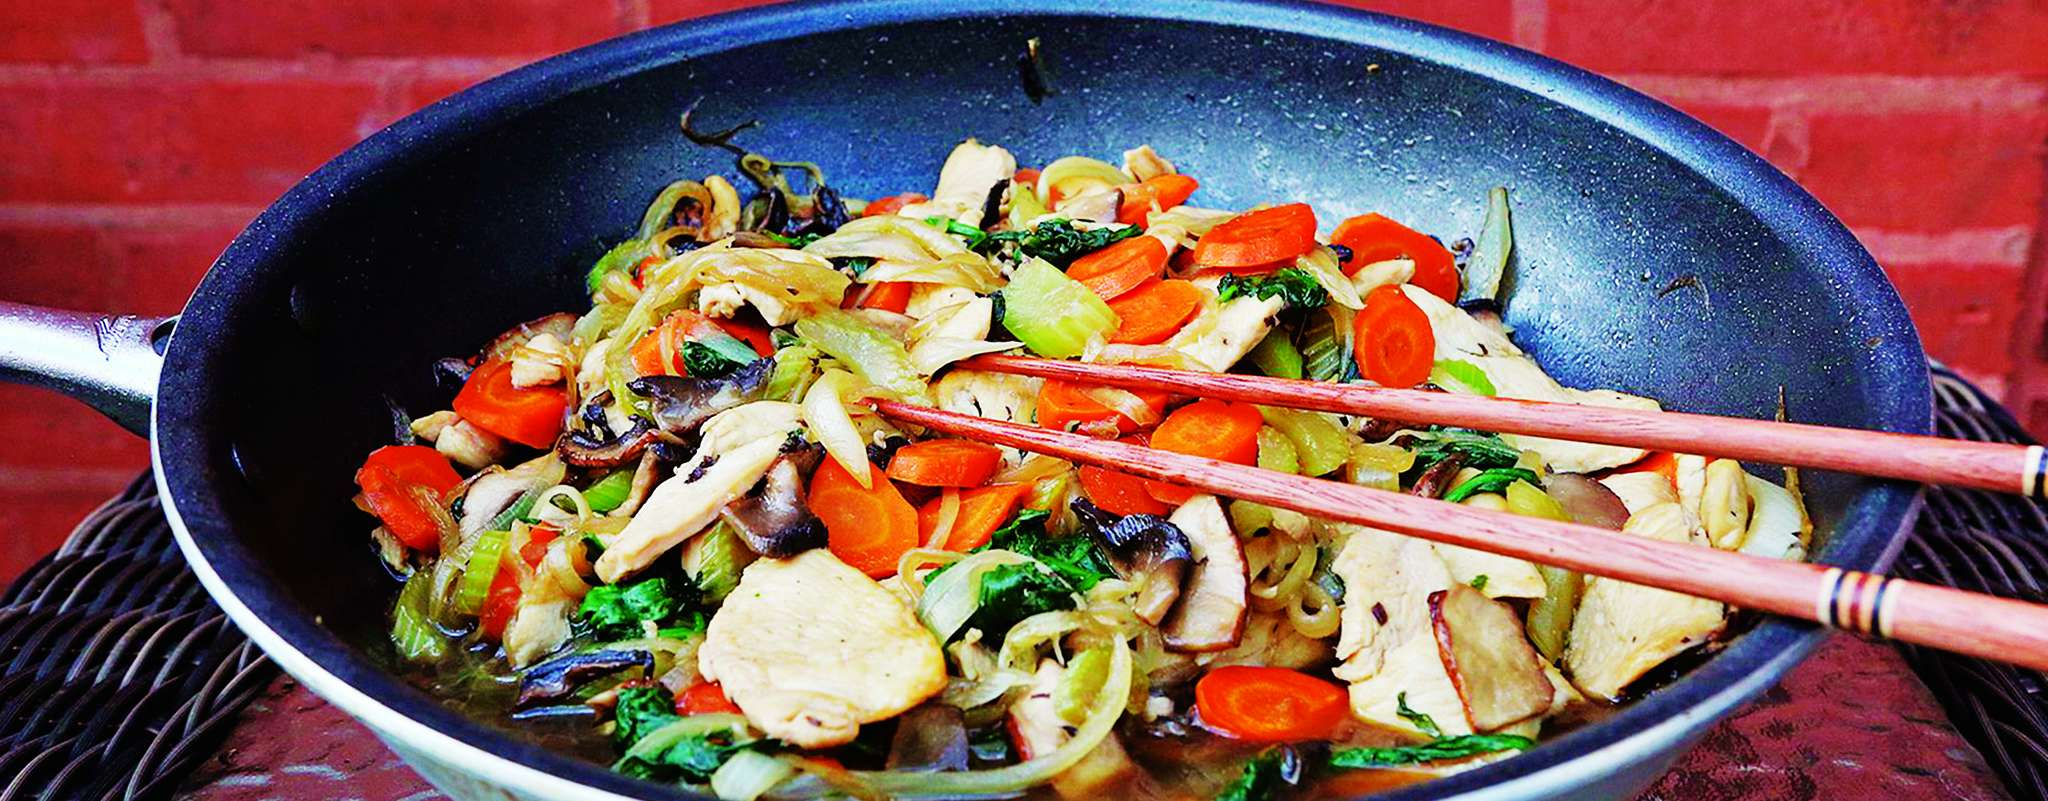 Chicken sukiyaki uses little broth but a wealth of vegetables: onion, carrots, celery, spinach, mushrooms, and bamboo shoots.